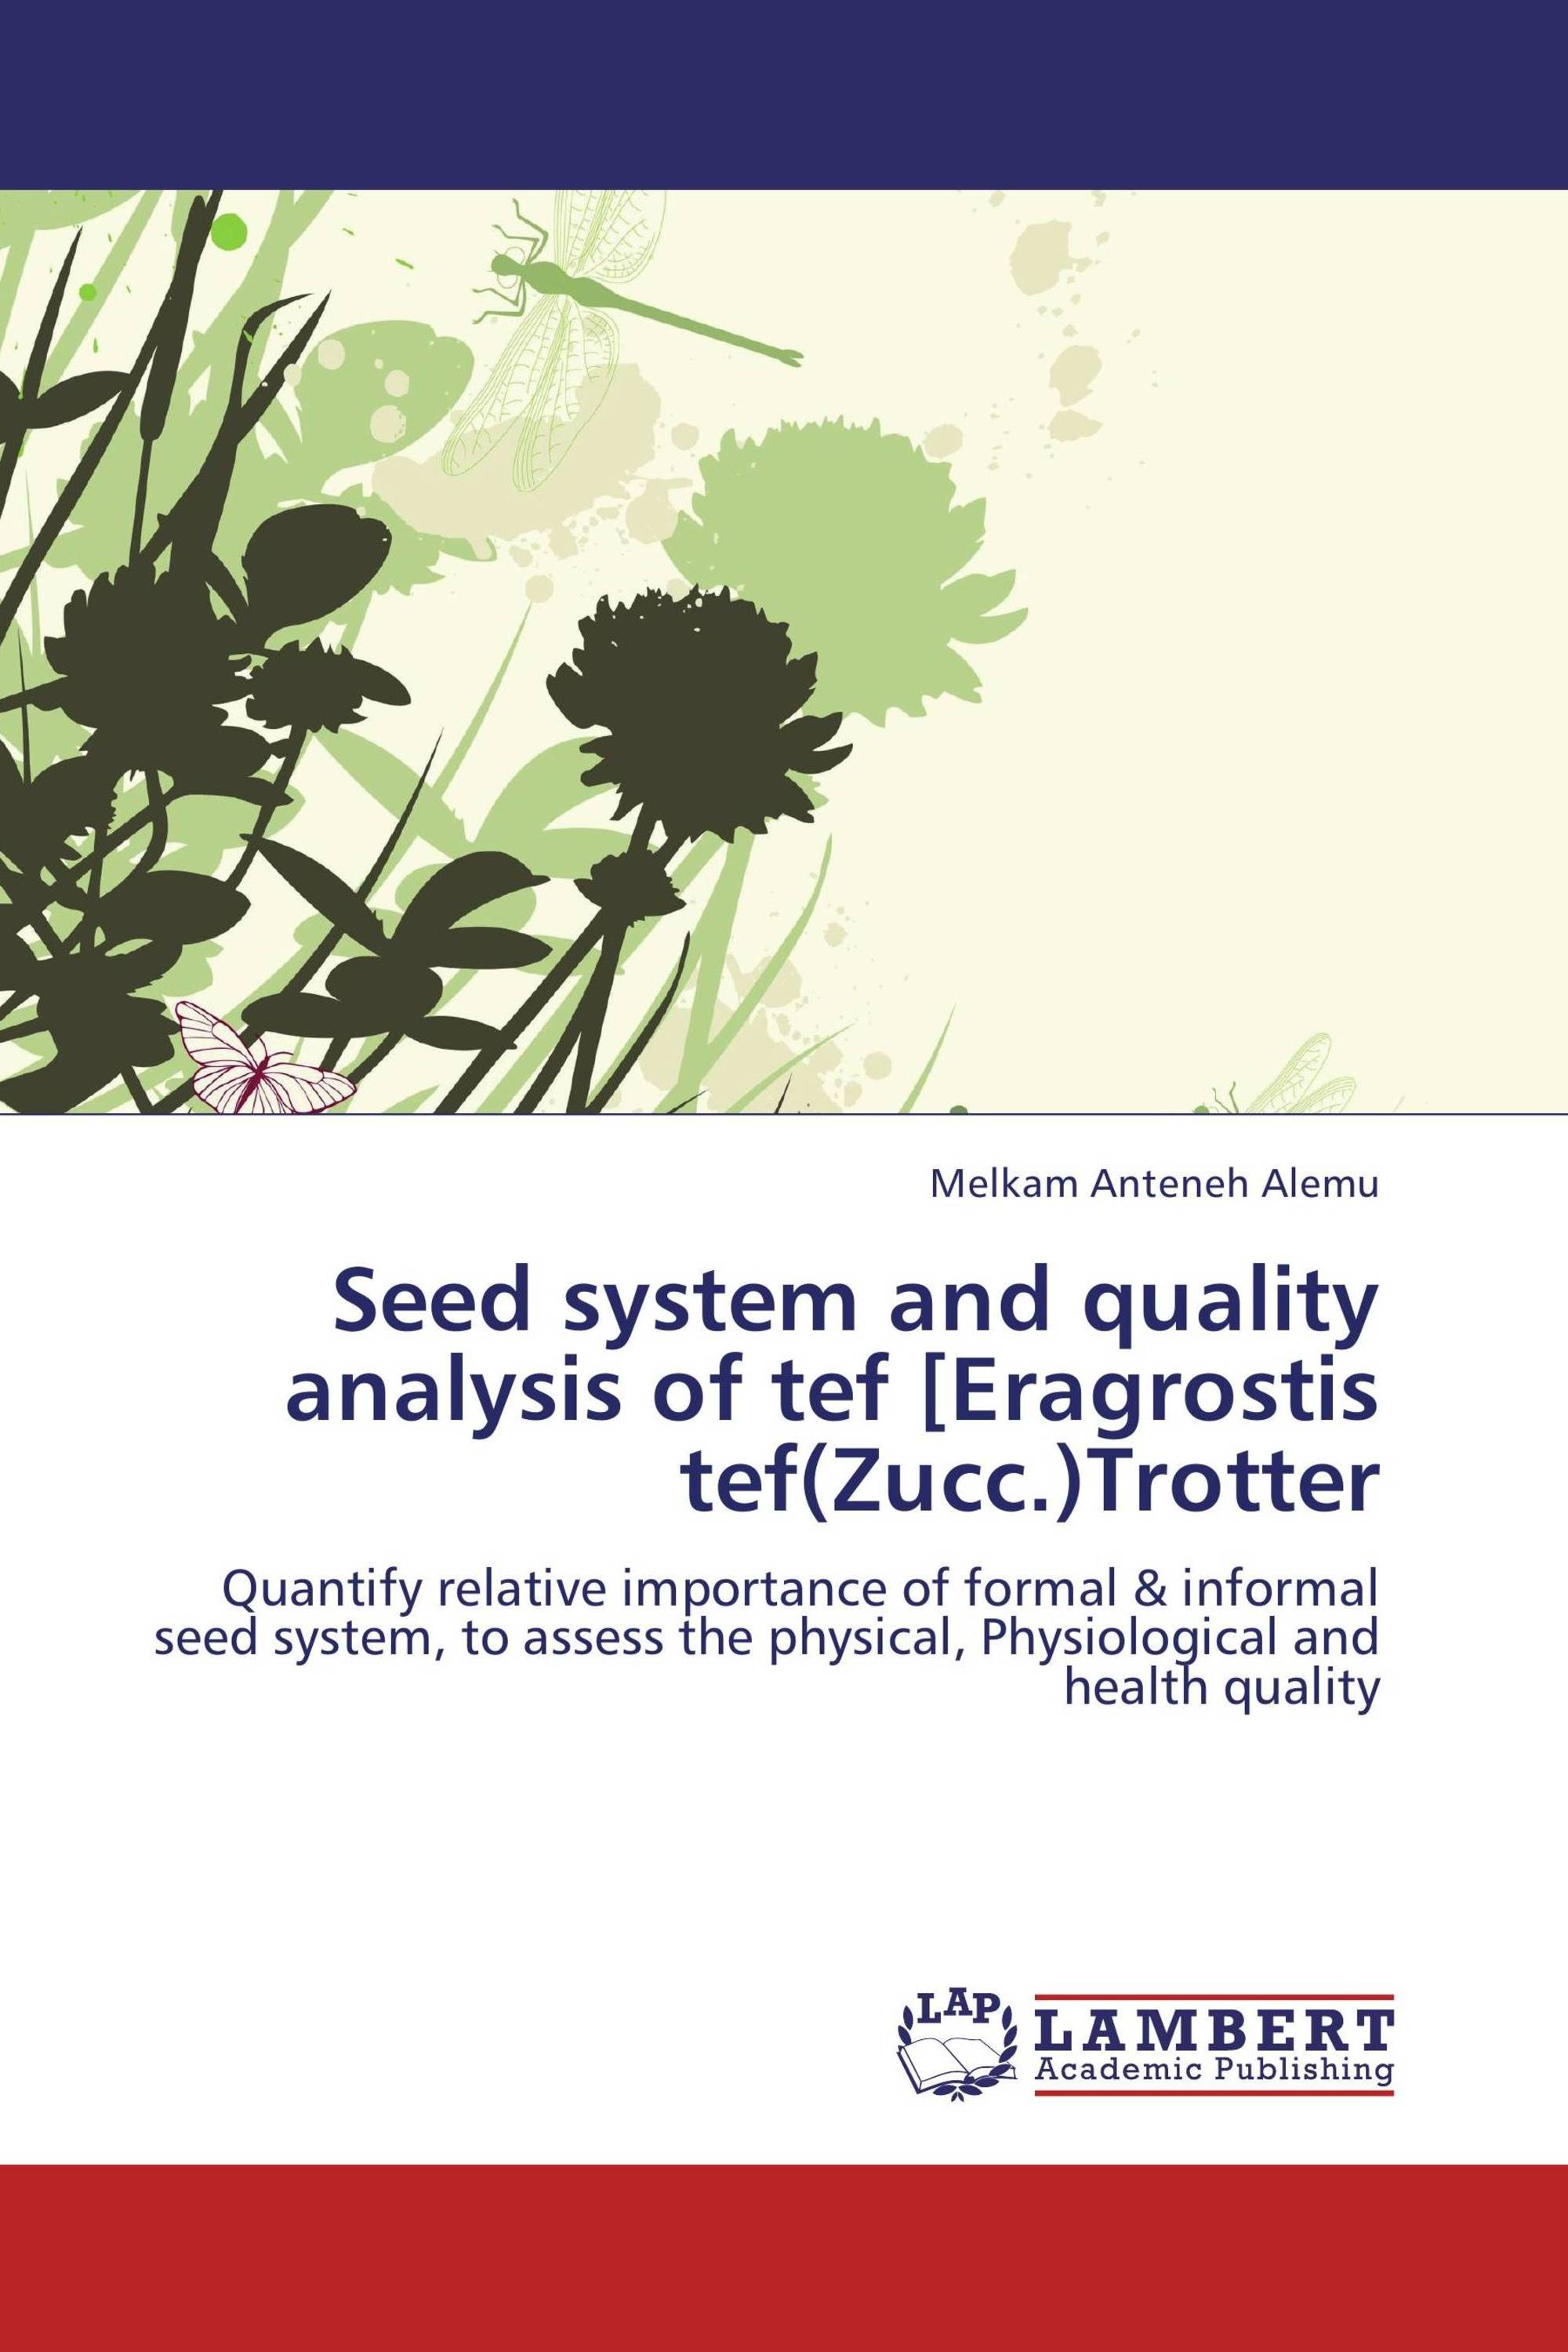 Seed system and quality analysis of tef [Eragrostis tef(Zucc.)Trotter